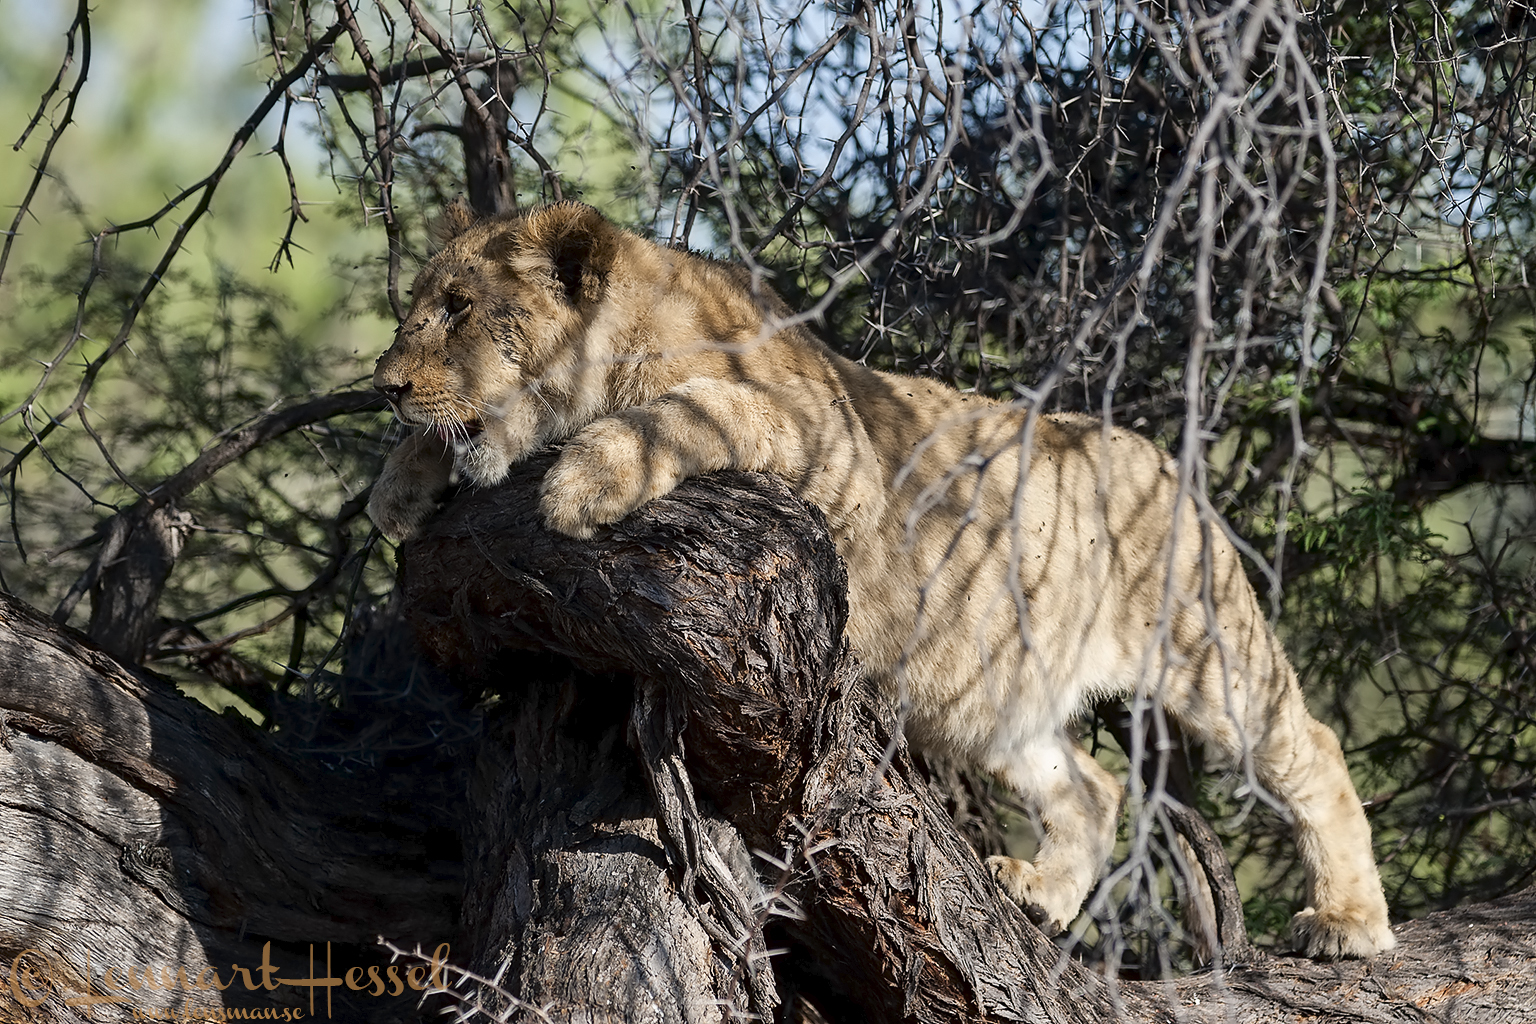 Lion cub in Moremi Game Reserve, Botswana